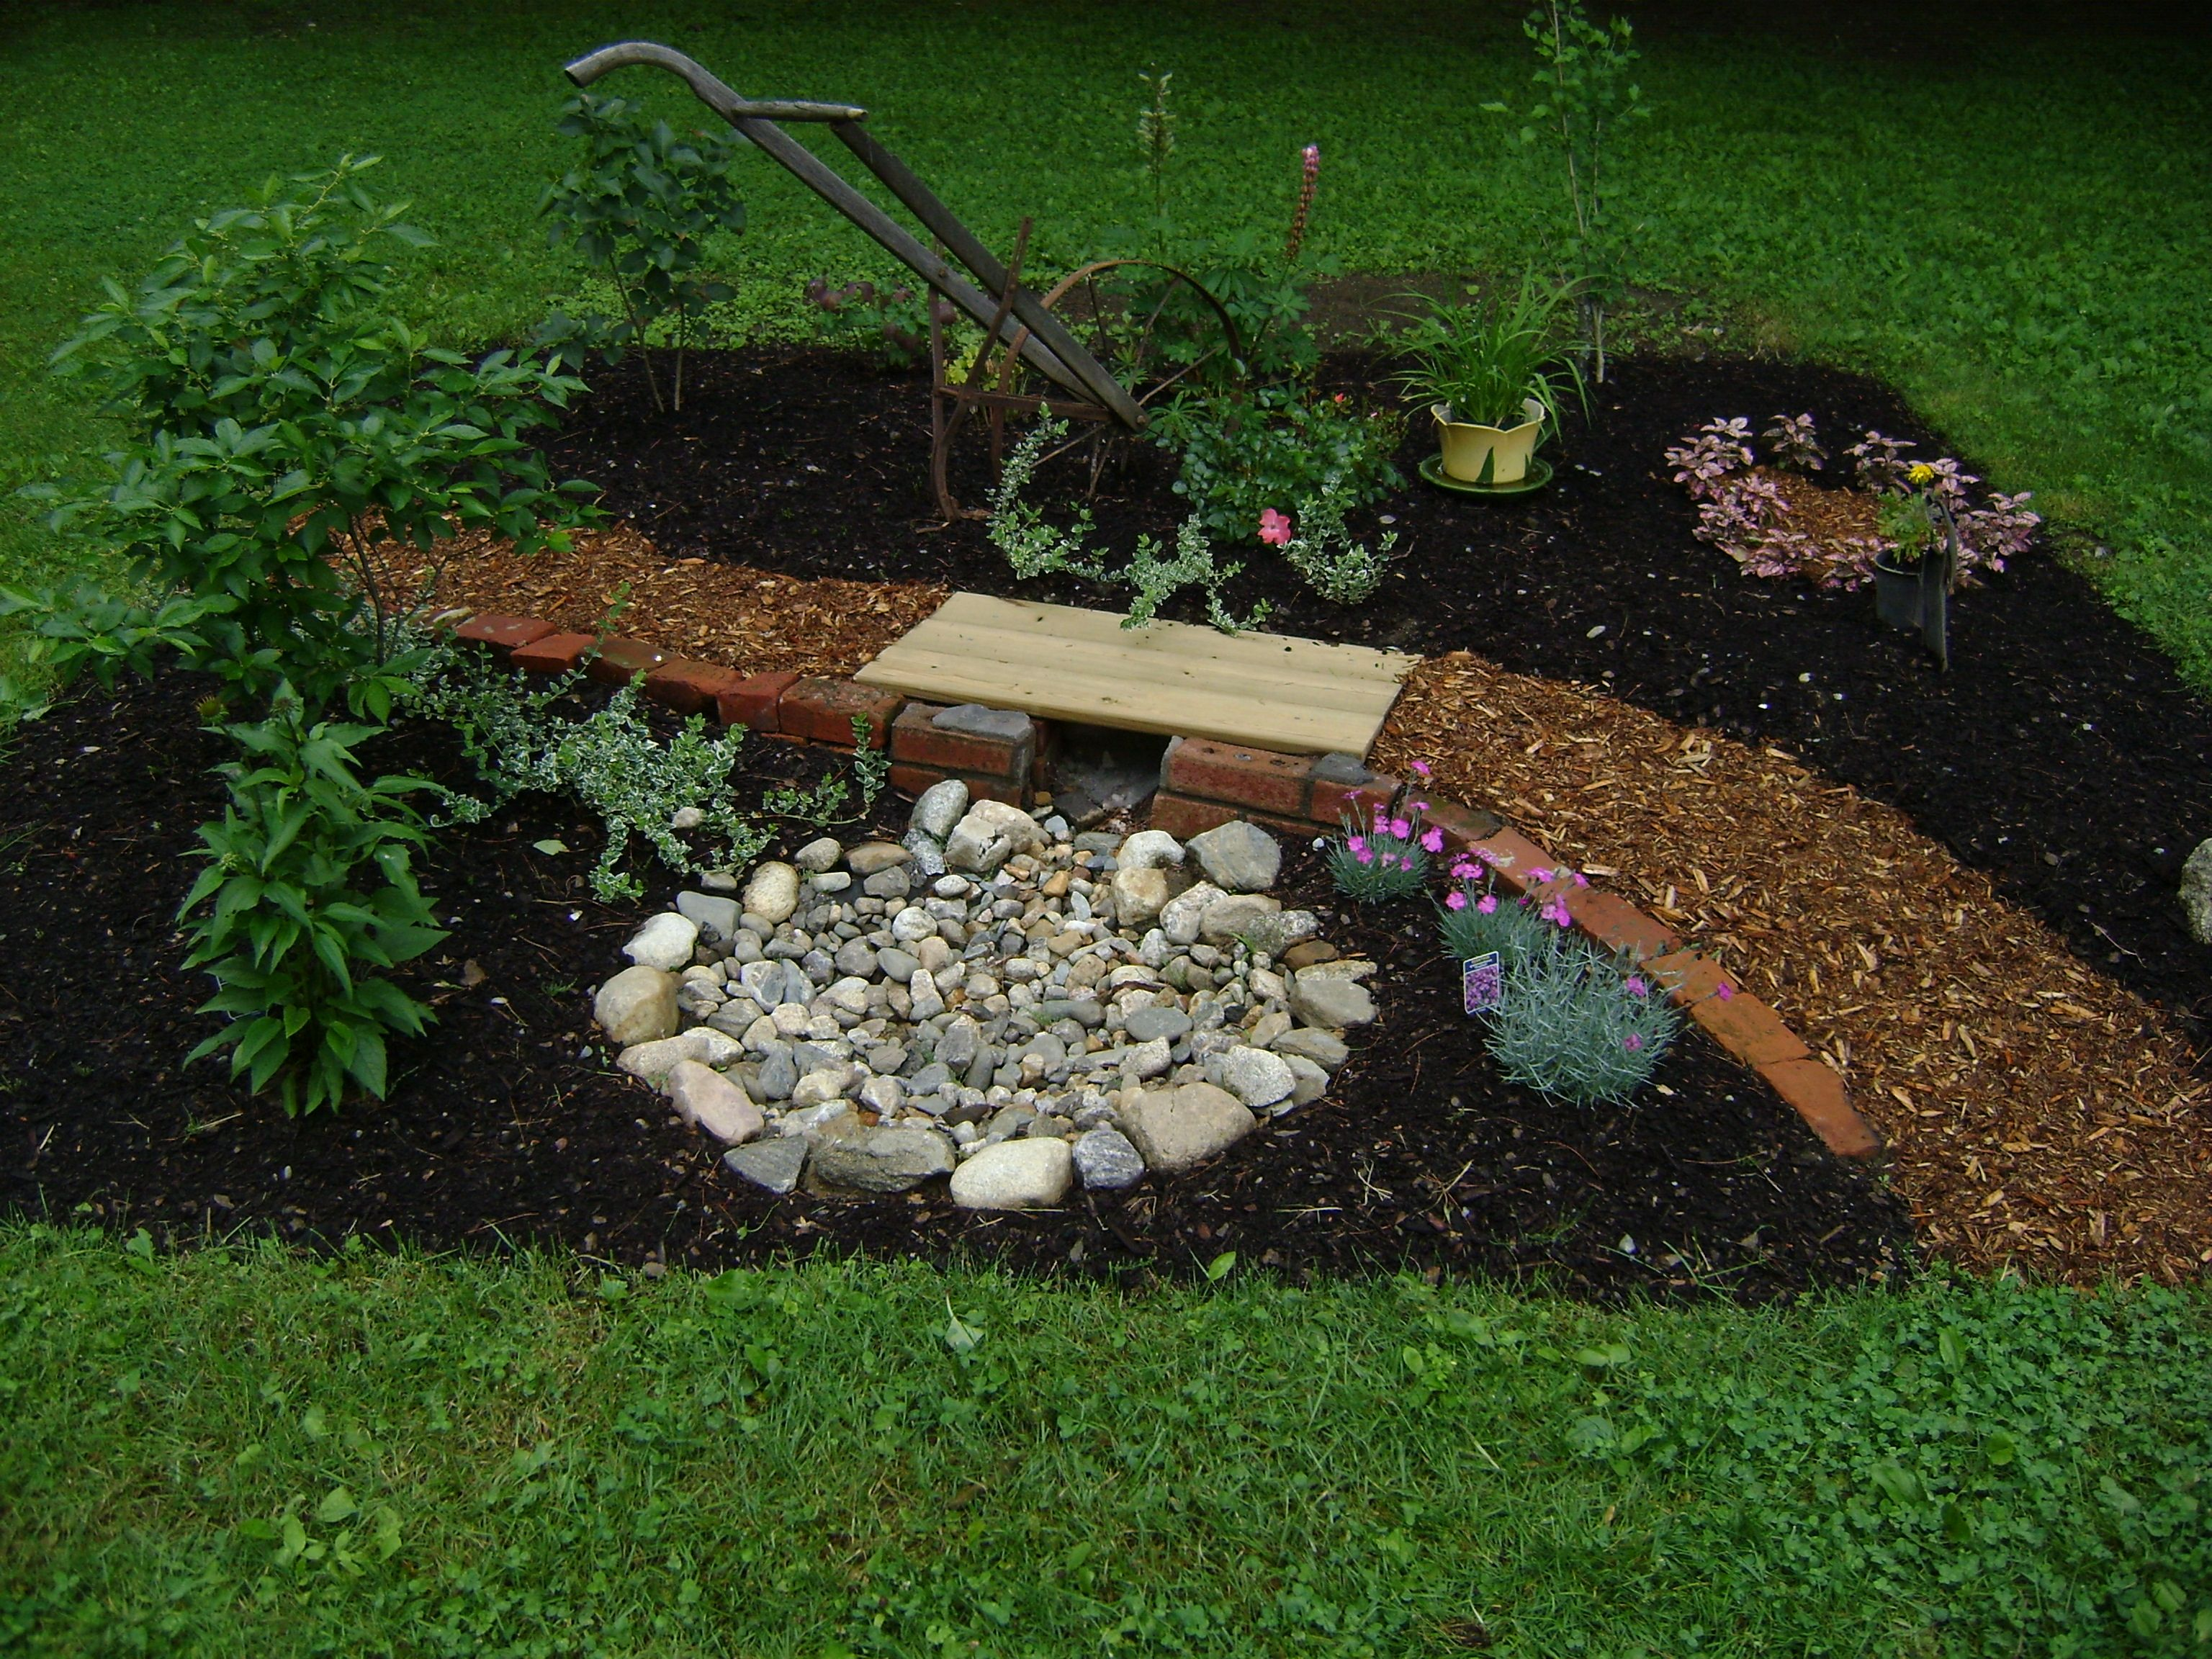 Memorial Garden Ideas best memorial rocks for garden memorial rocks for garden alices garden Memorial Garden